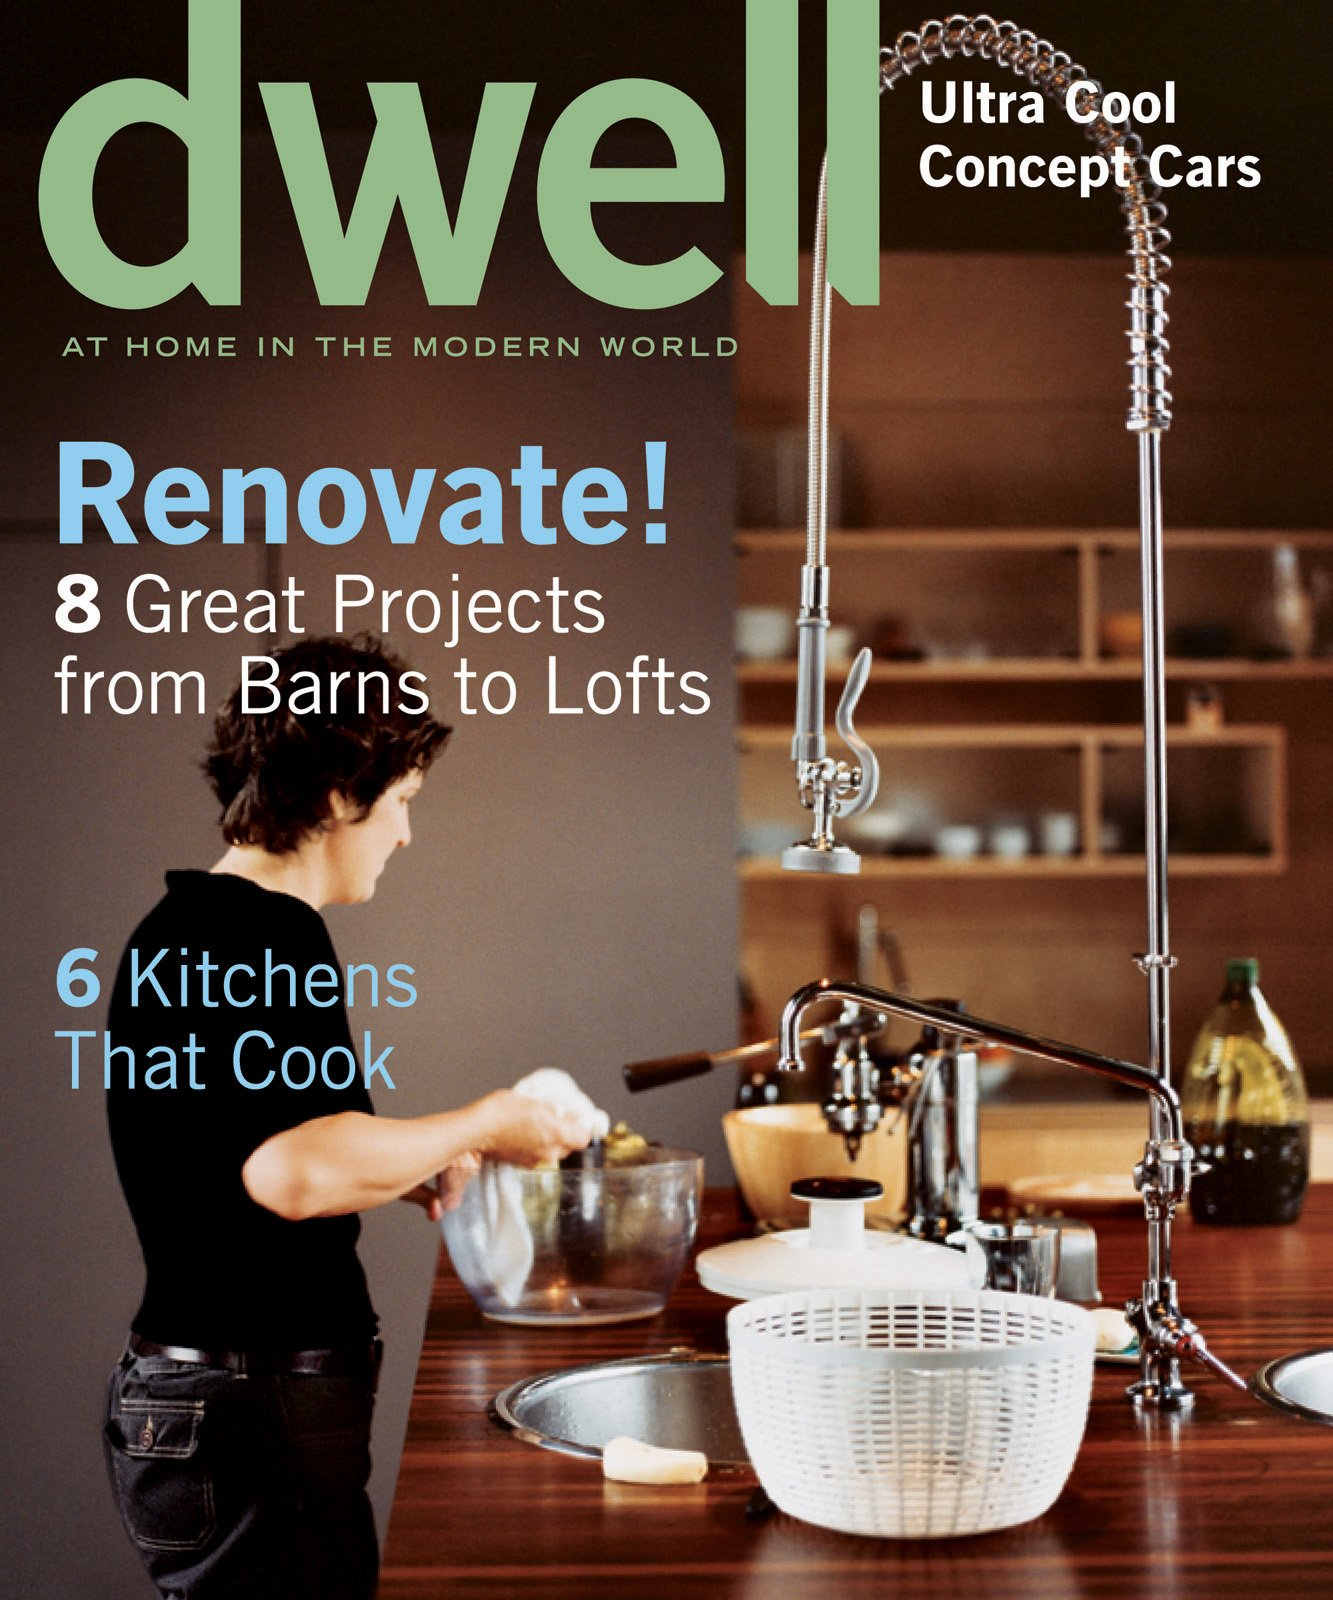 Dwell May 2003, Vol. 03 Issue 05: Renovate! by Dwell